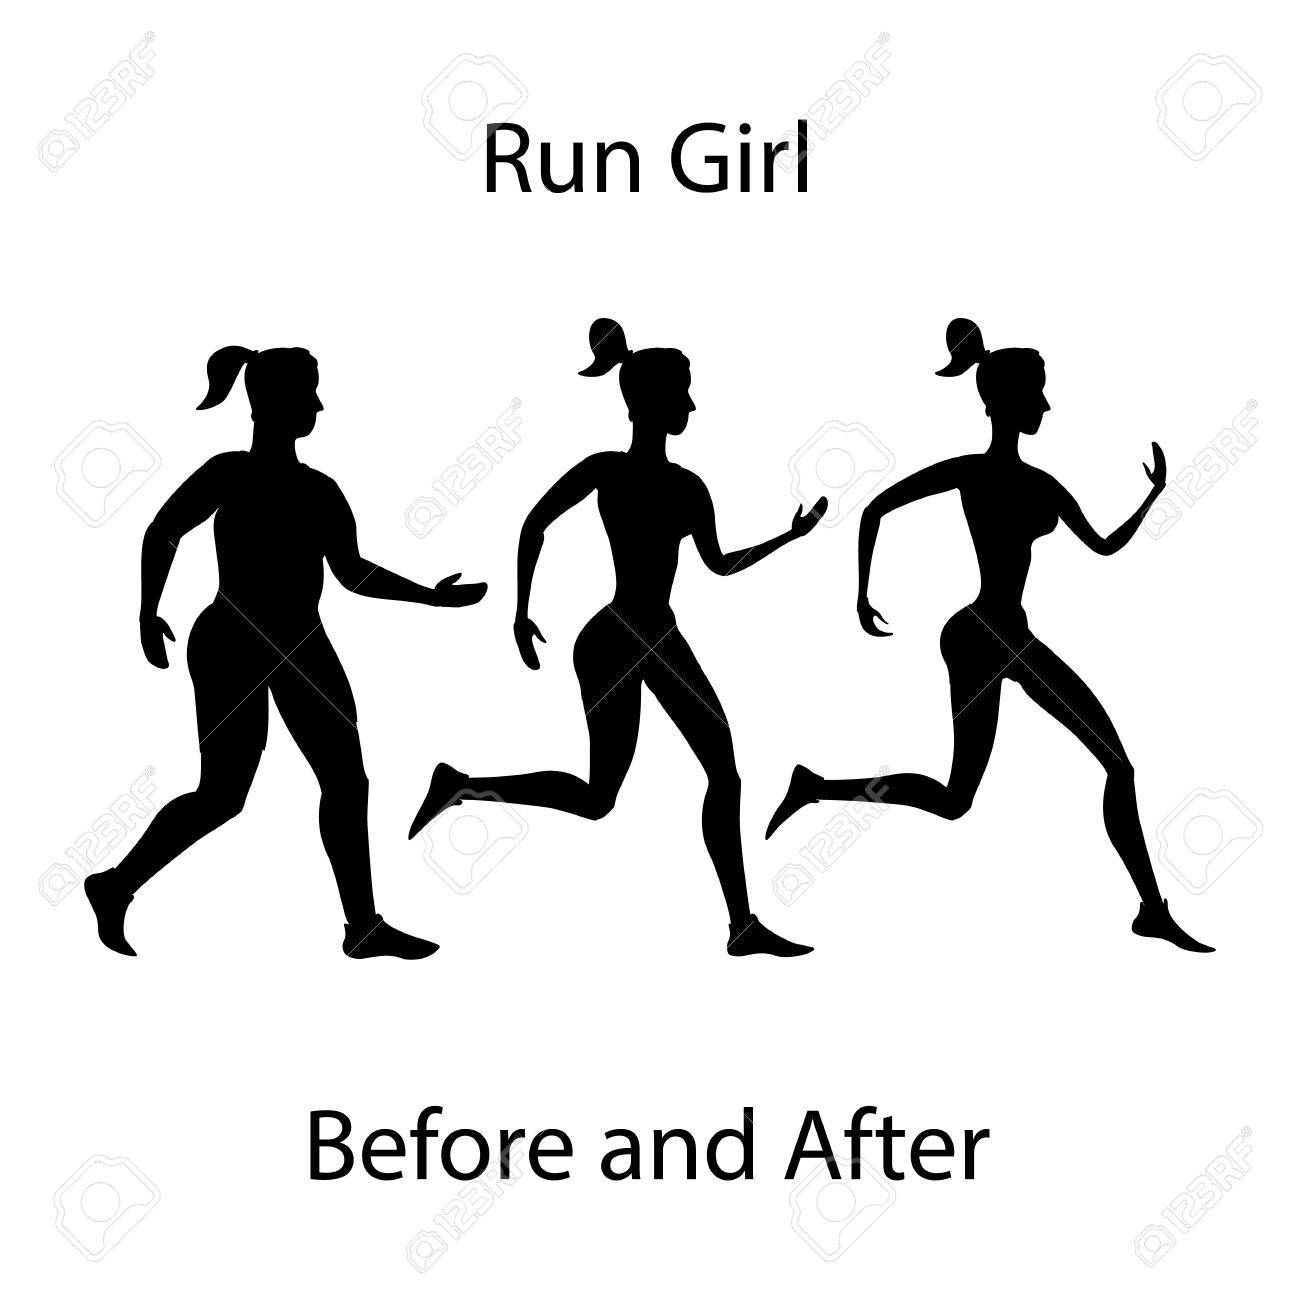 1300x1300 Simple Cartoon Of A Woman Jogging, Before And After Exercise